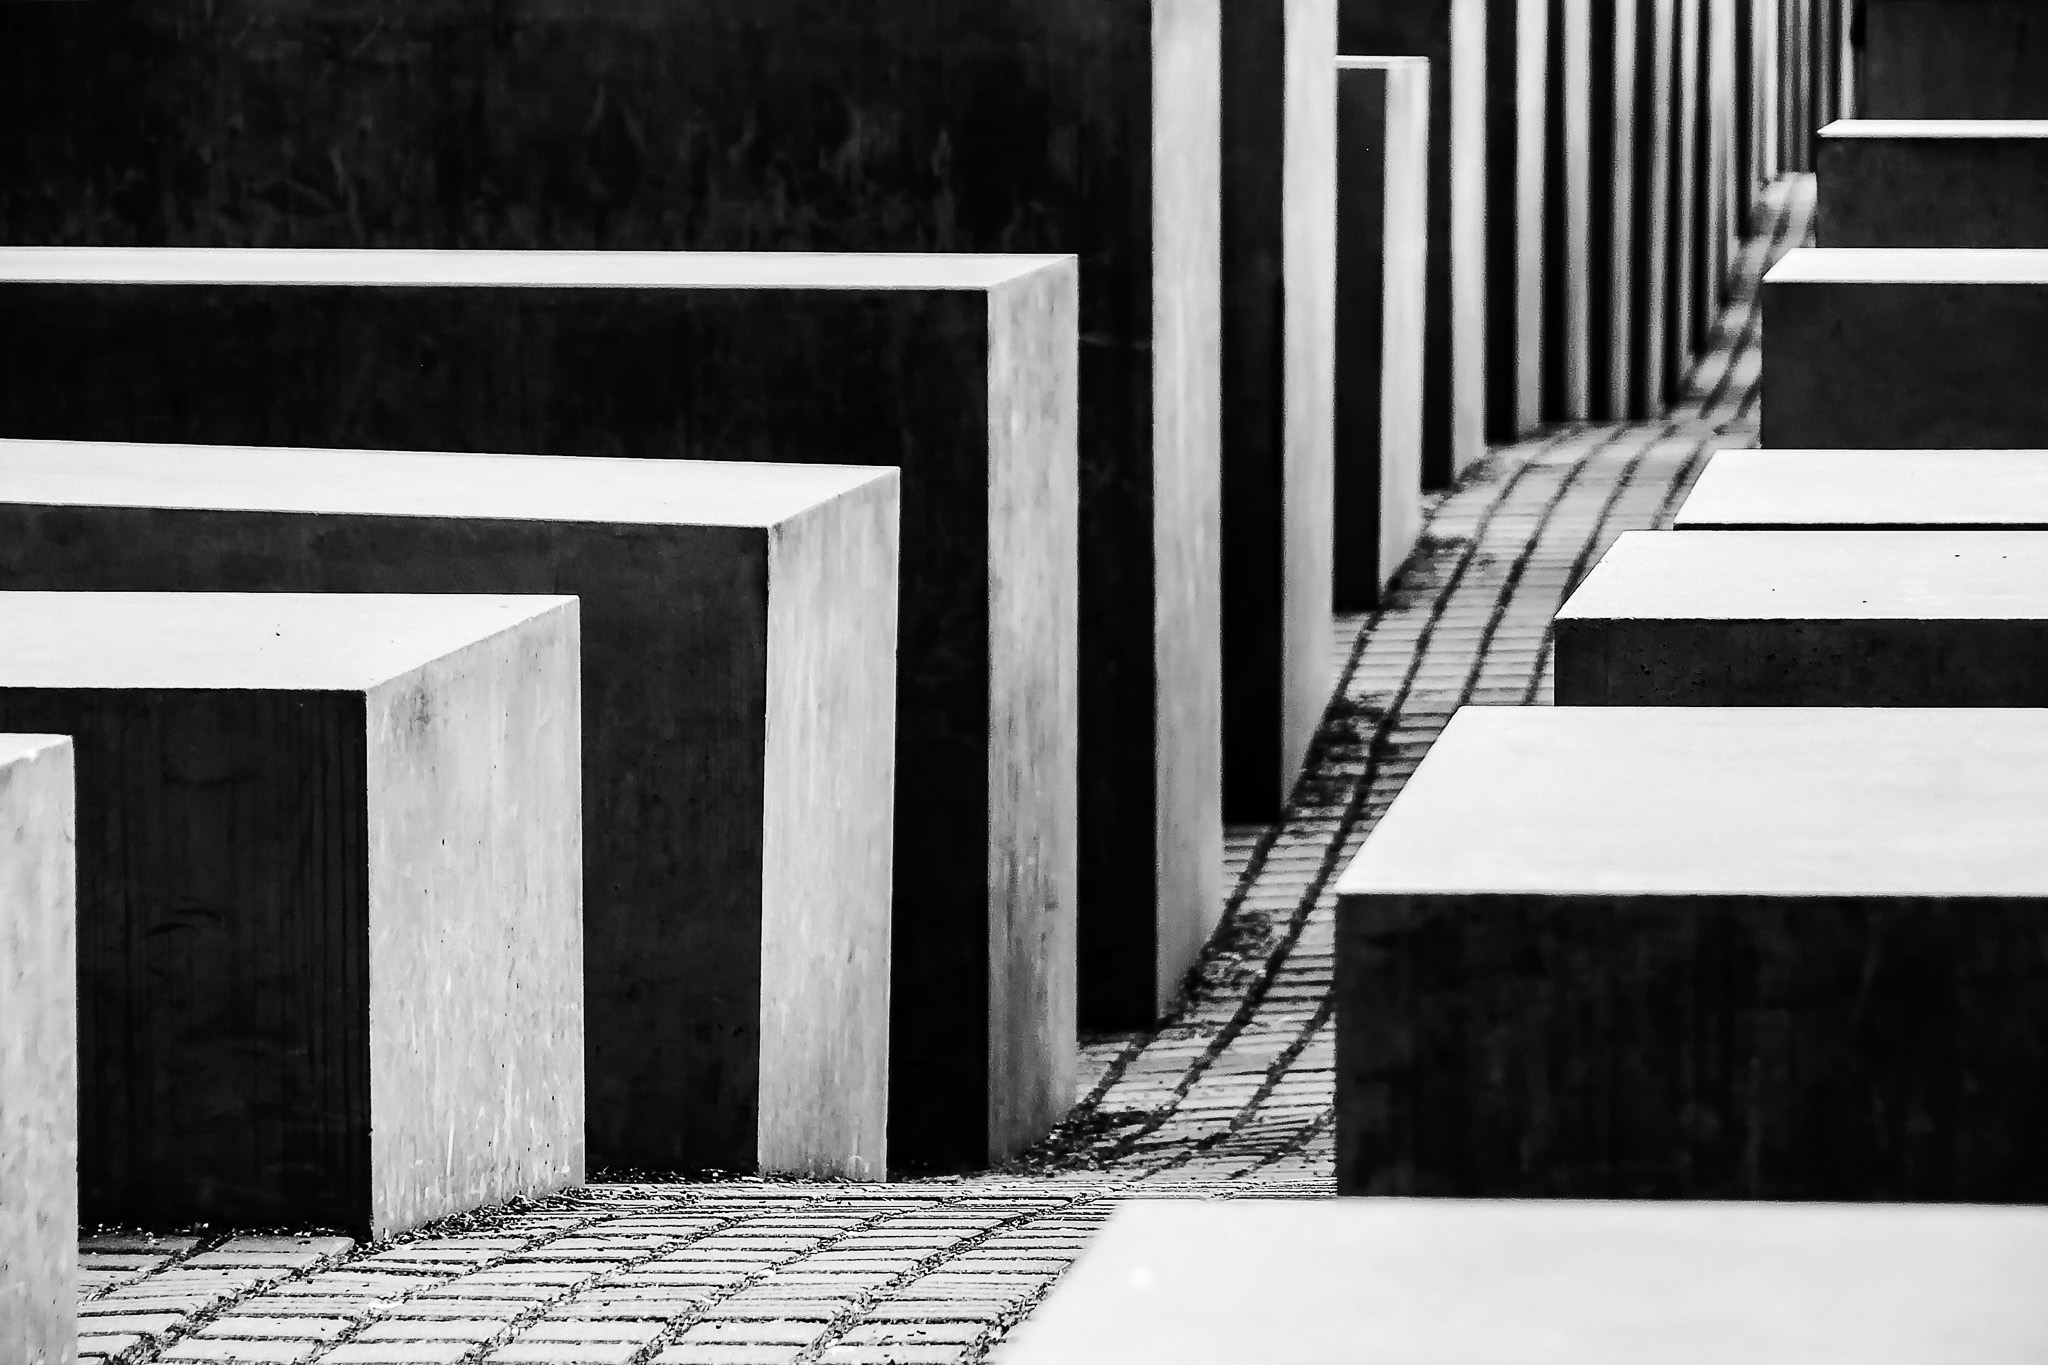 berlin-holocaustmem-07-2